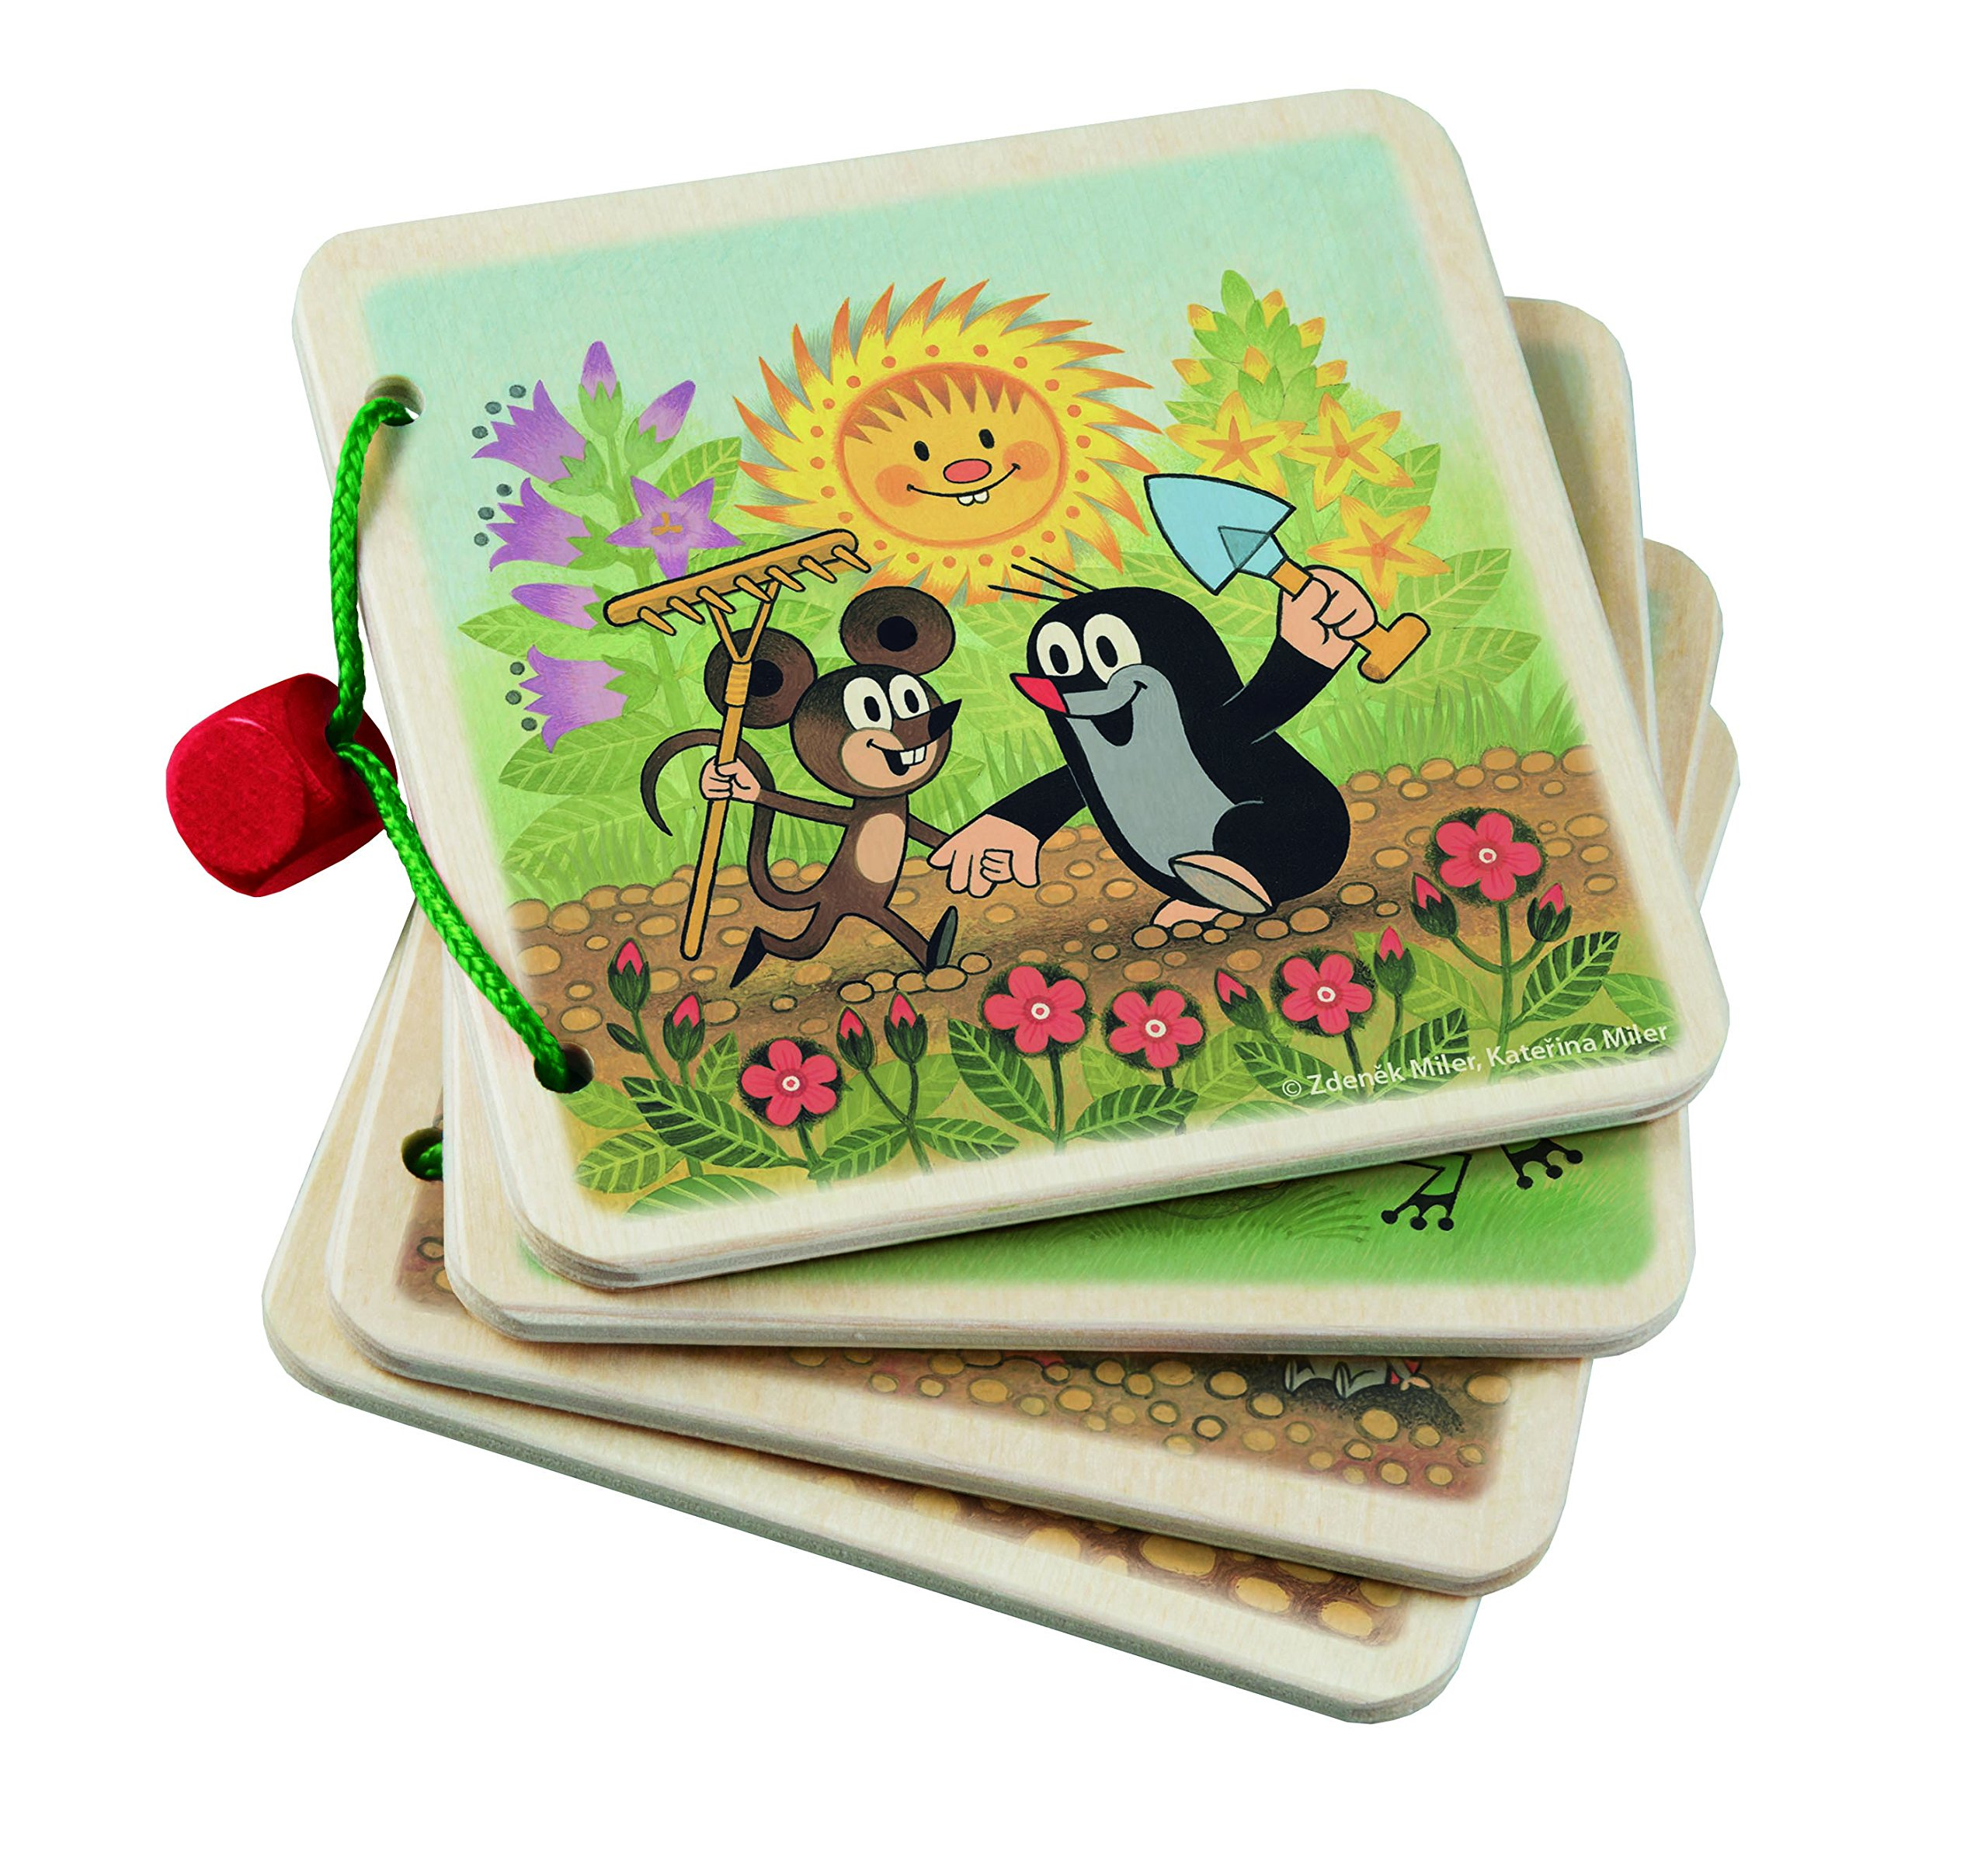 Krtek Little Mole Scrap Book in The Garden Wooden Pages Activity Book for Babies 1yr + Detoa 13899